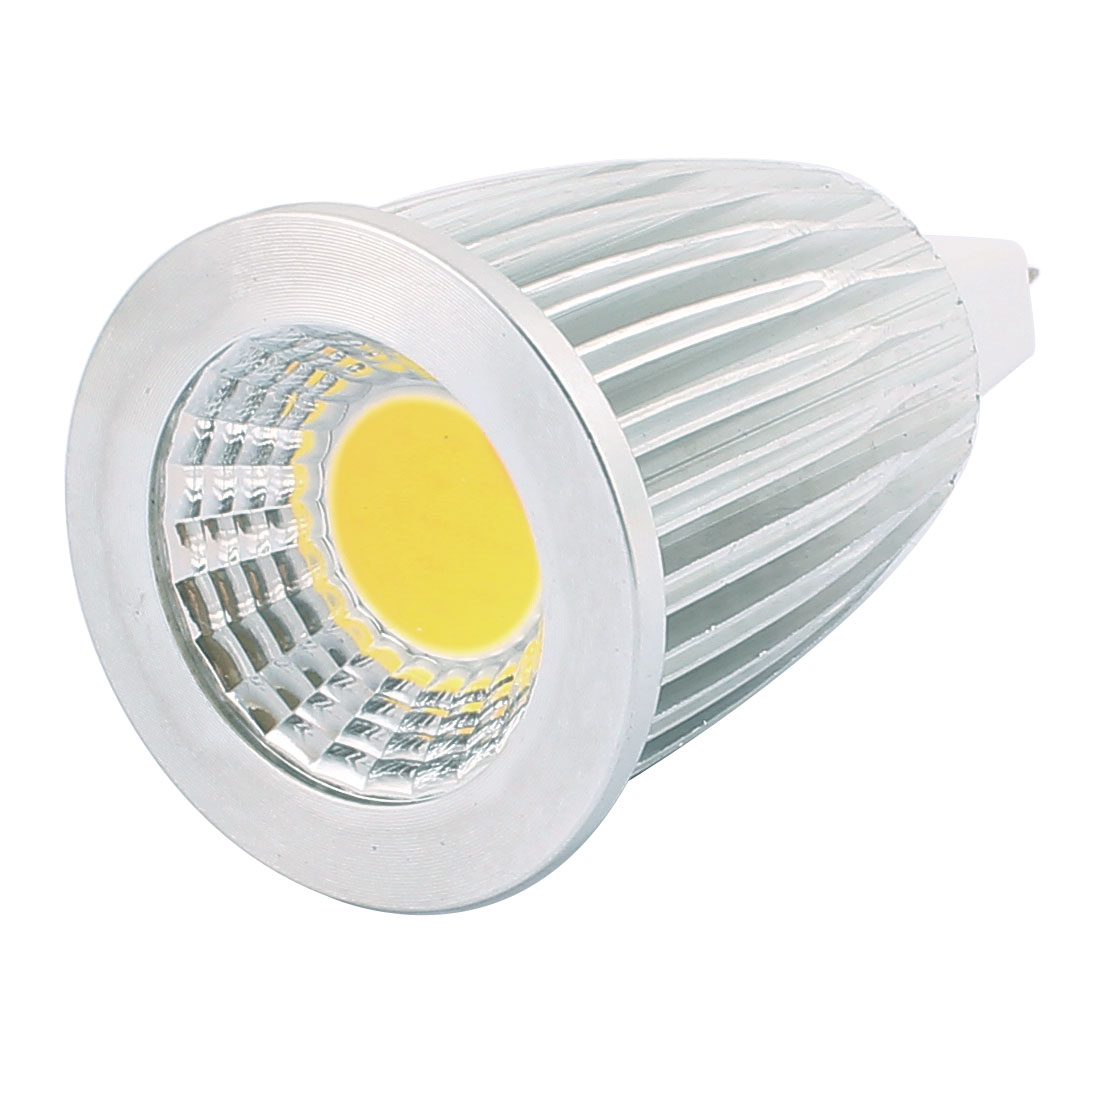 AC85-265V 7W GU5.3 COB LED Spotlight Lamp Bulb Energy Saving Downlight Pure White